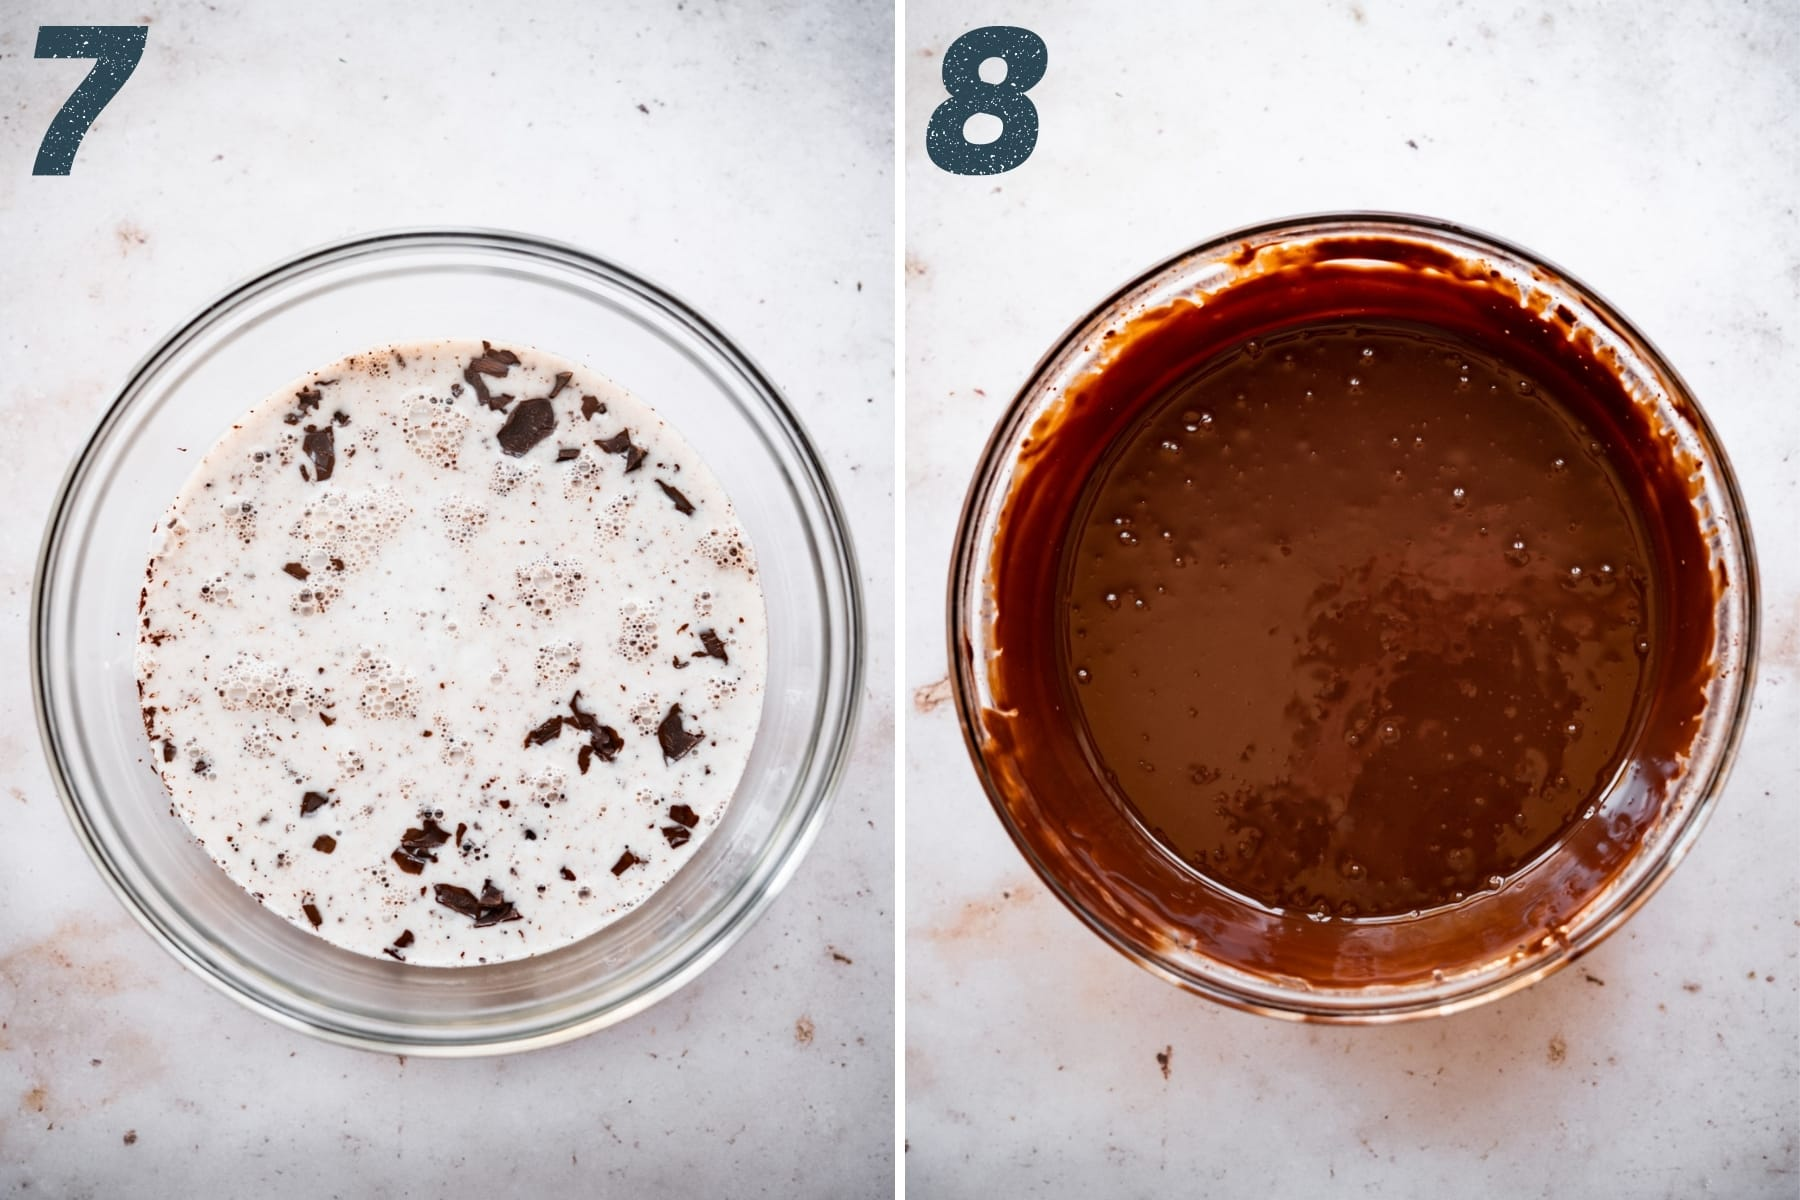 before and after whisking together chocolate ganache.